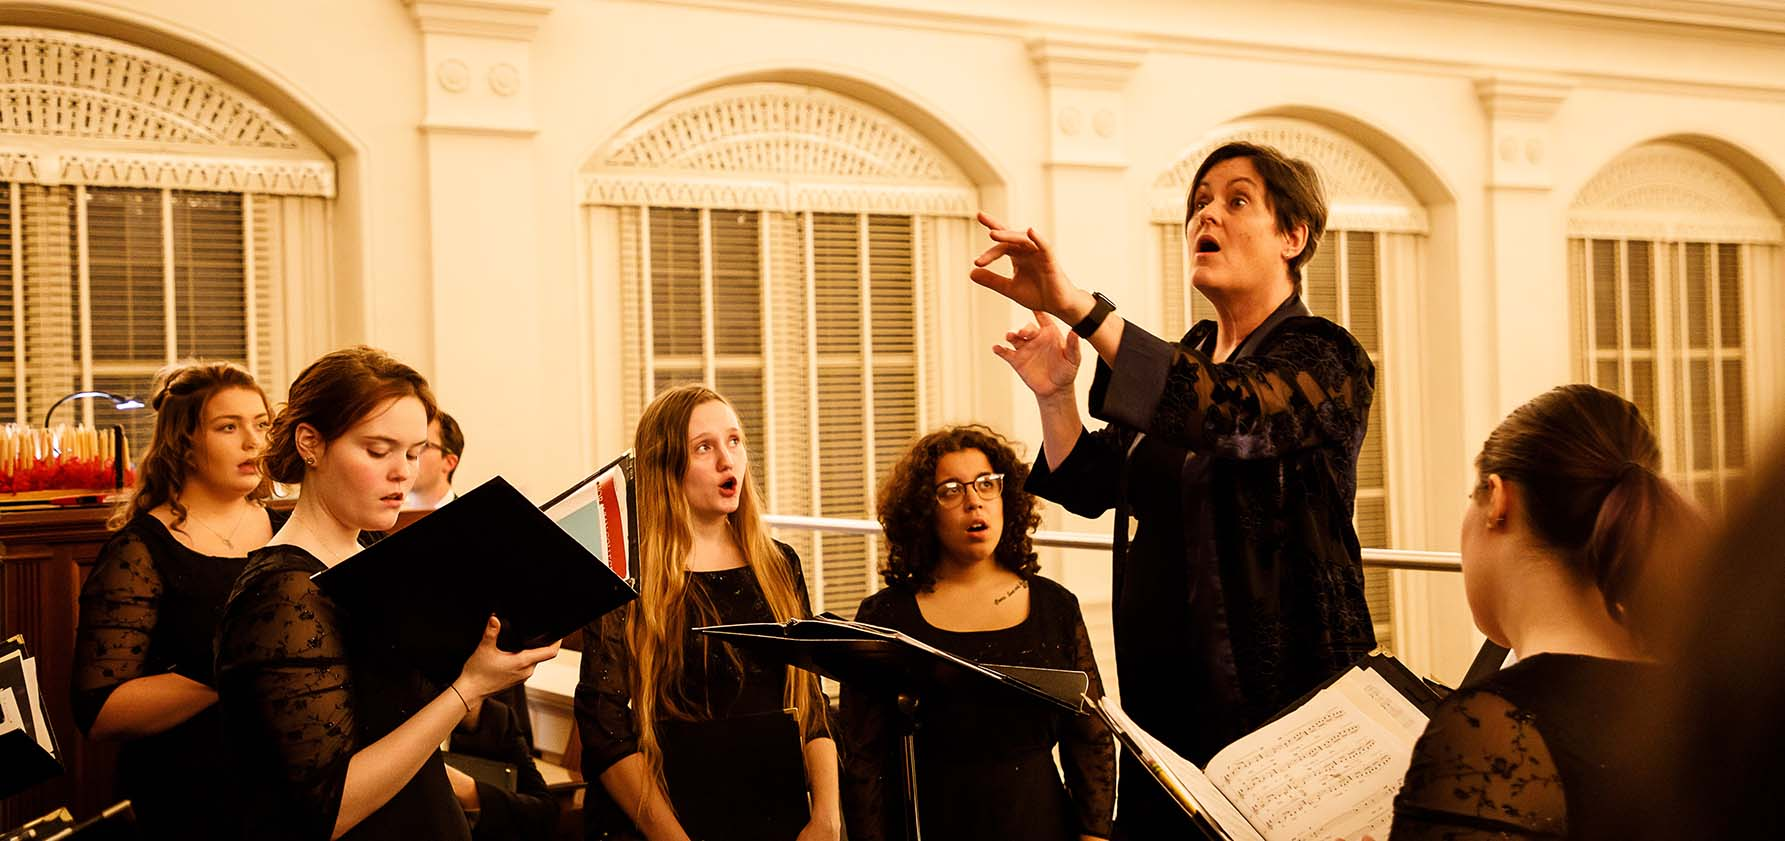 Dr. Paula Zerkle conducts the Moravian College Women's Choir at the Christmas Vespers service.